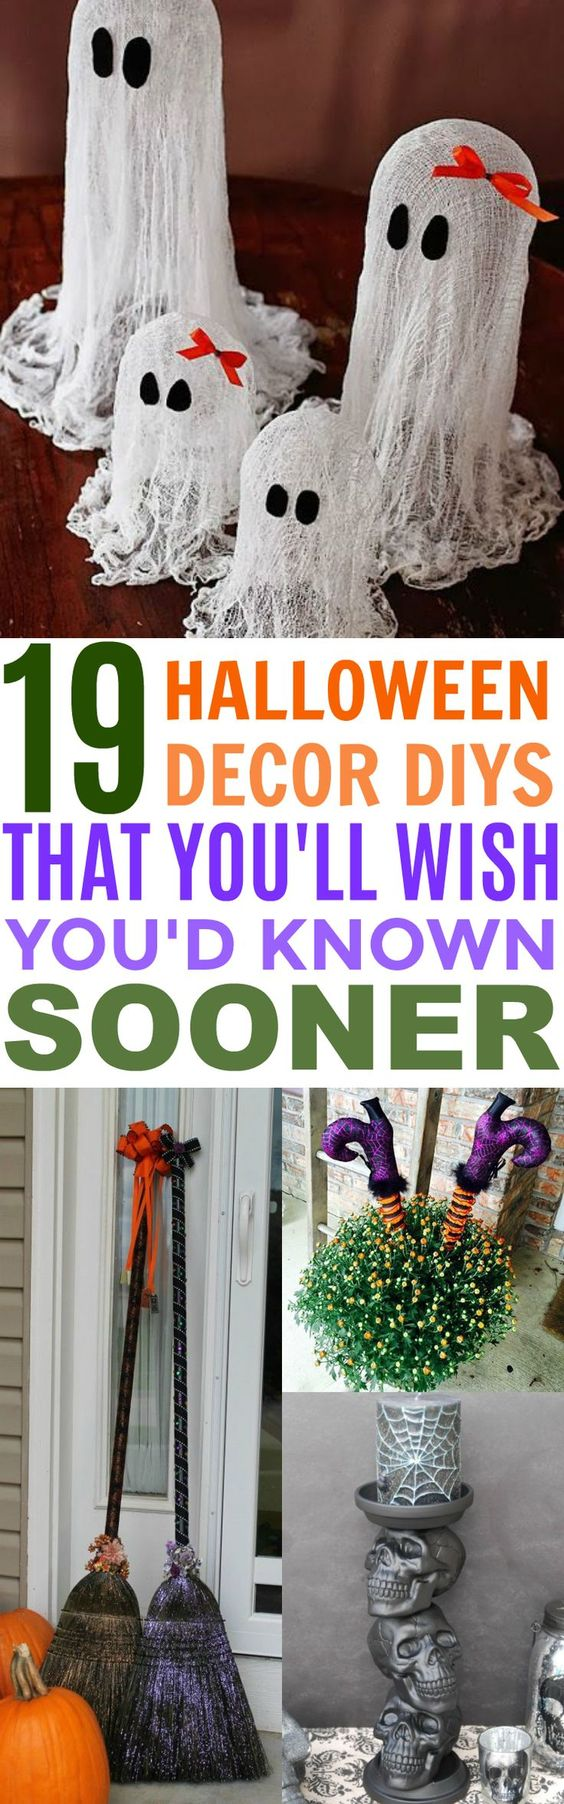 19 Spooktacular DIY Halloween Decor ideas You'll Wish You'd Known Sooner   Porch Ideas   Garage Decorations   Candle Holders   Goodie Bags